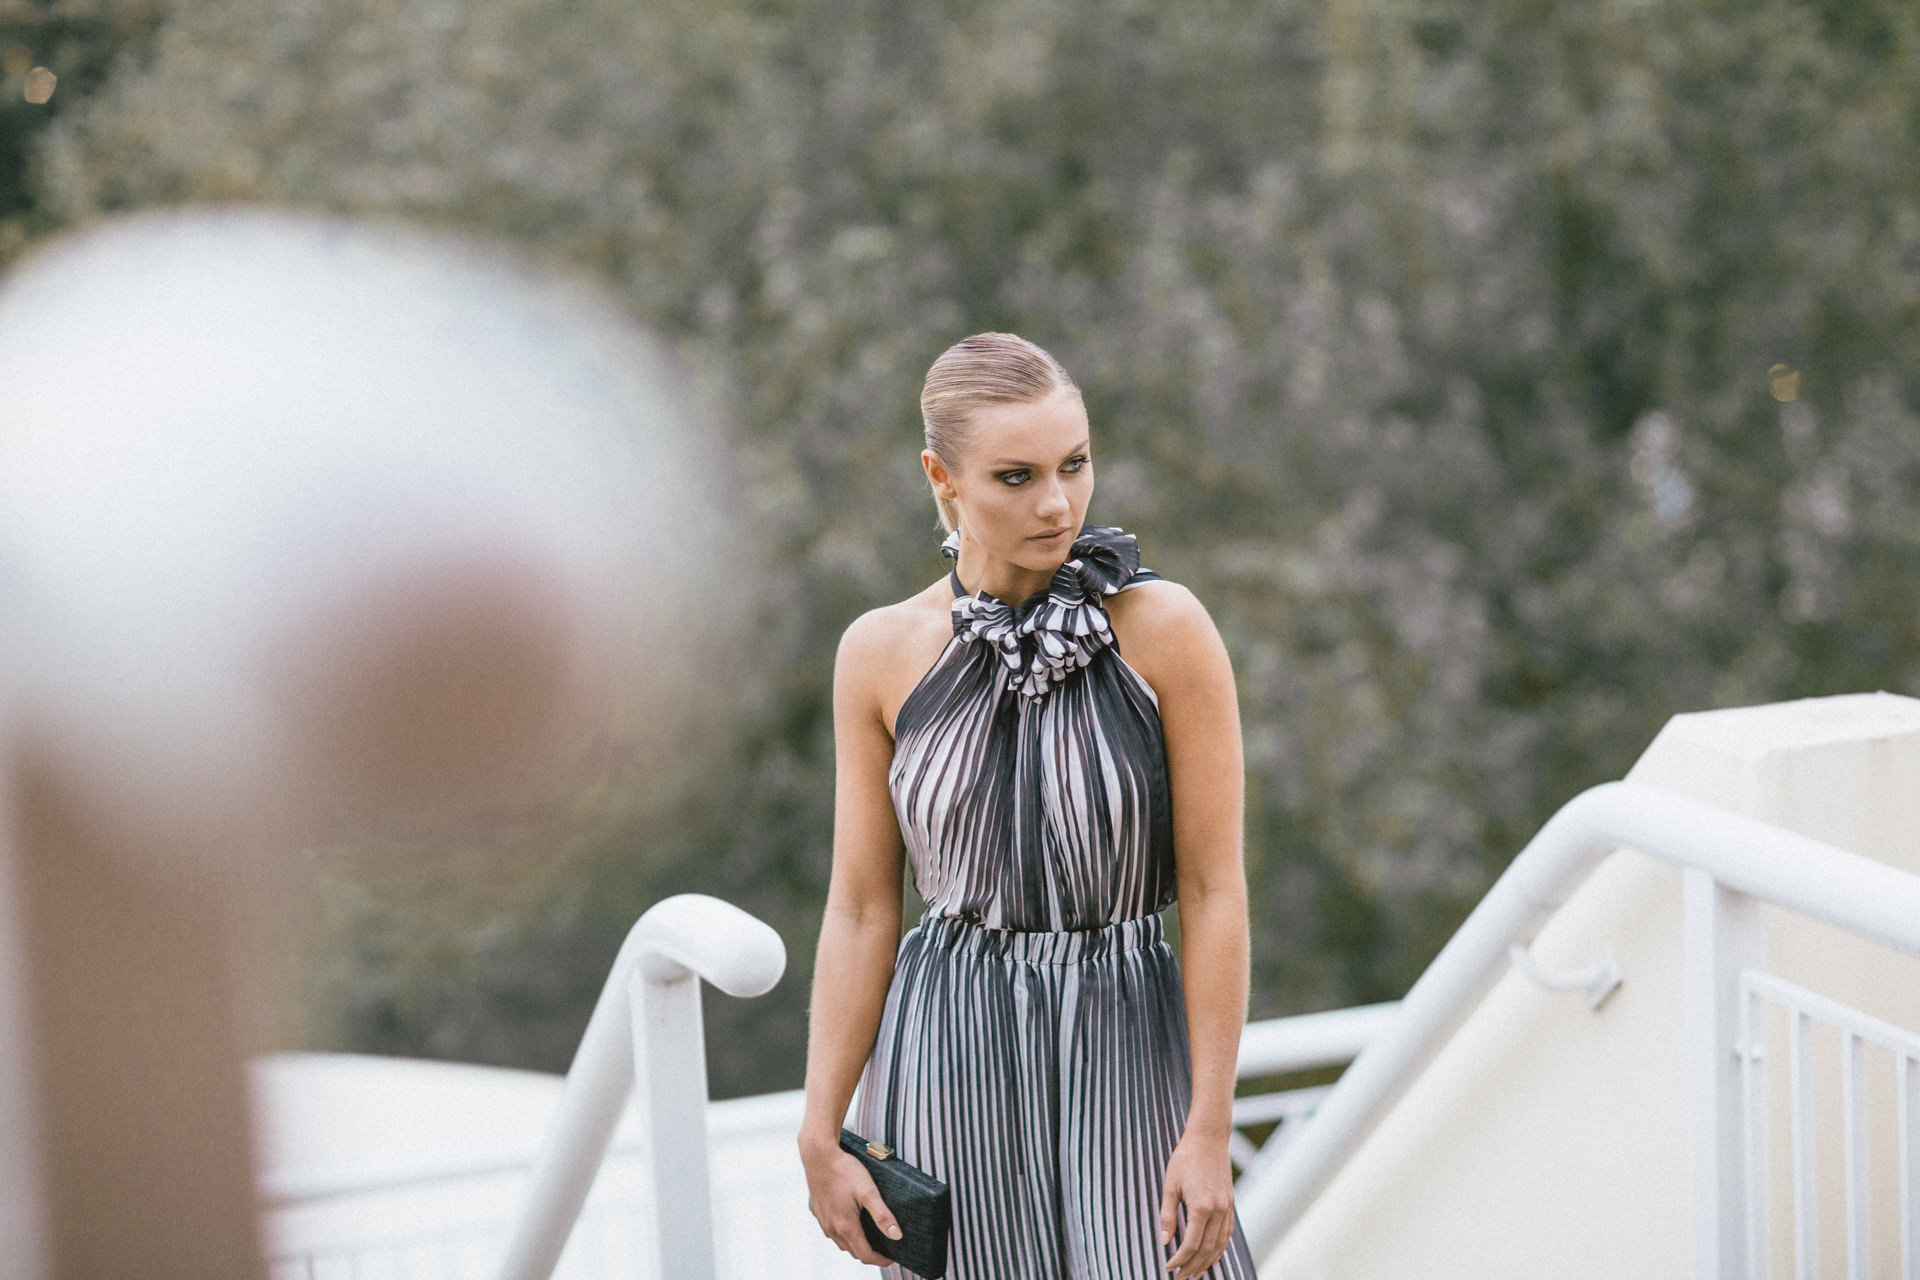 creative fashion photographer in melbourne - best pictures - quote today